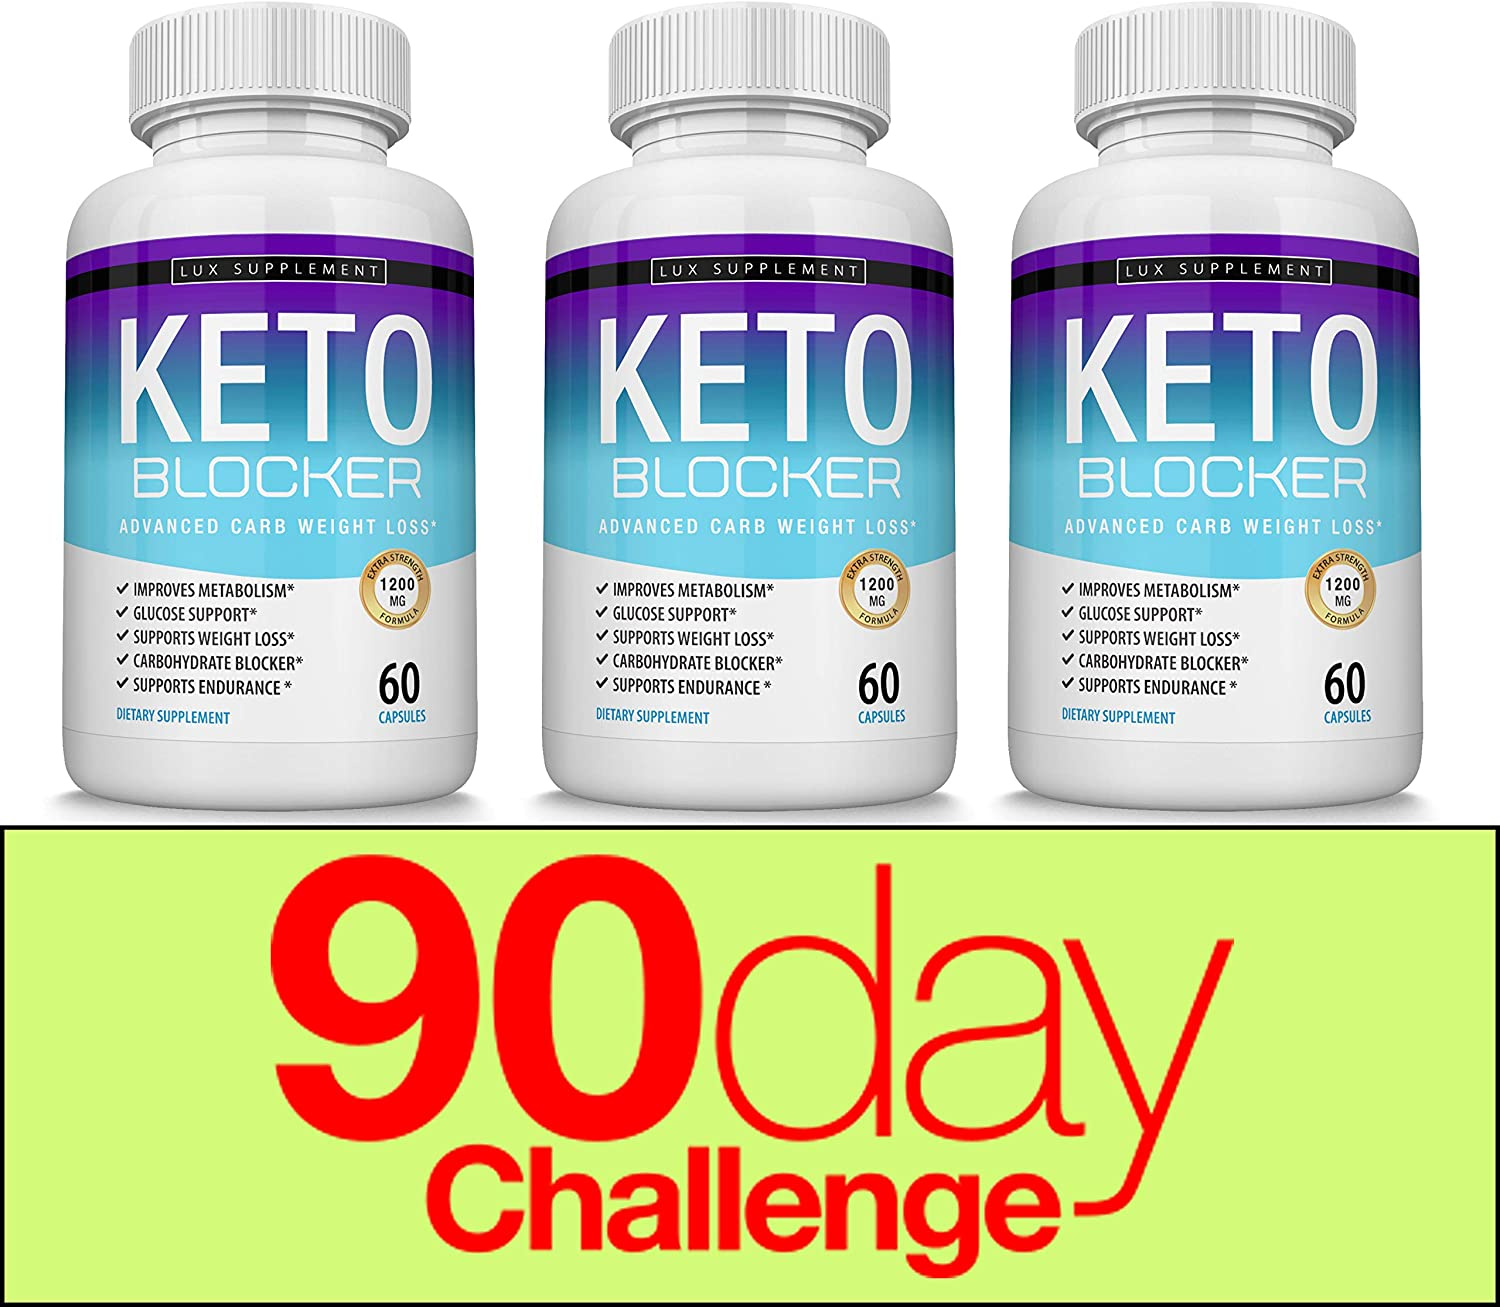 Keto Blocker Pills Advanced Carb Weight Loss 1200 mg Natural Ketosis Fat Burner for ketogenic Diet, Suppress Appetite Cravings, Boost Metabolism, Effective Men Women, 60 Capsules, Lux Supplement